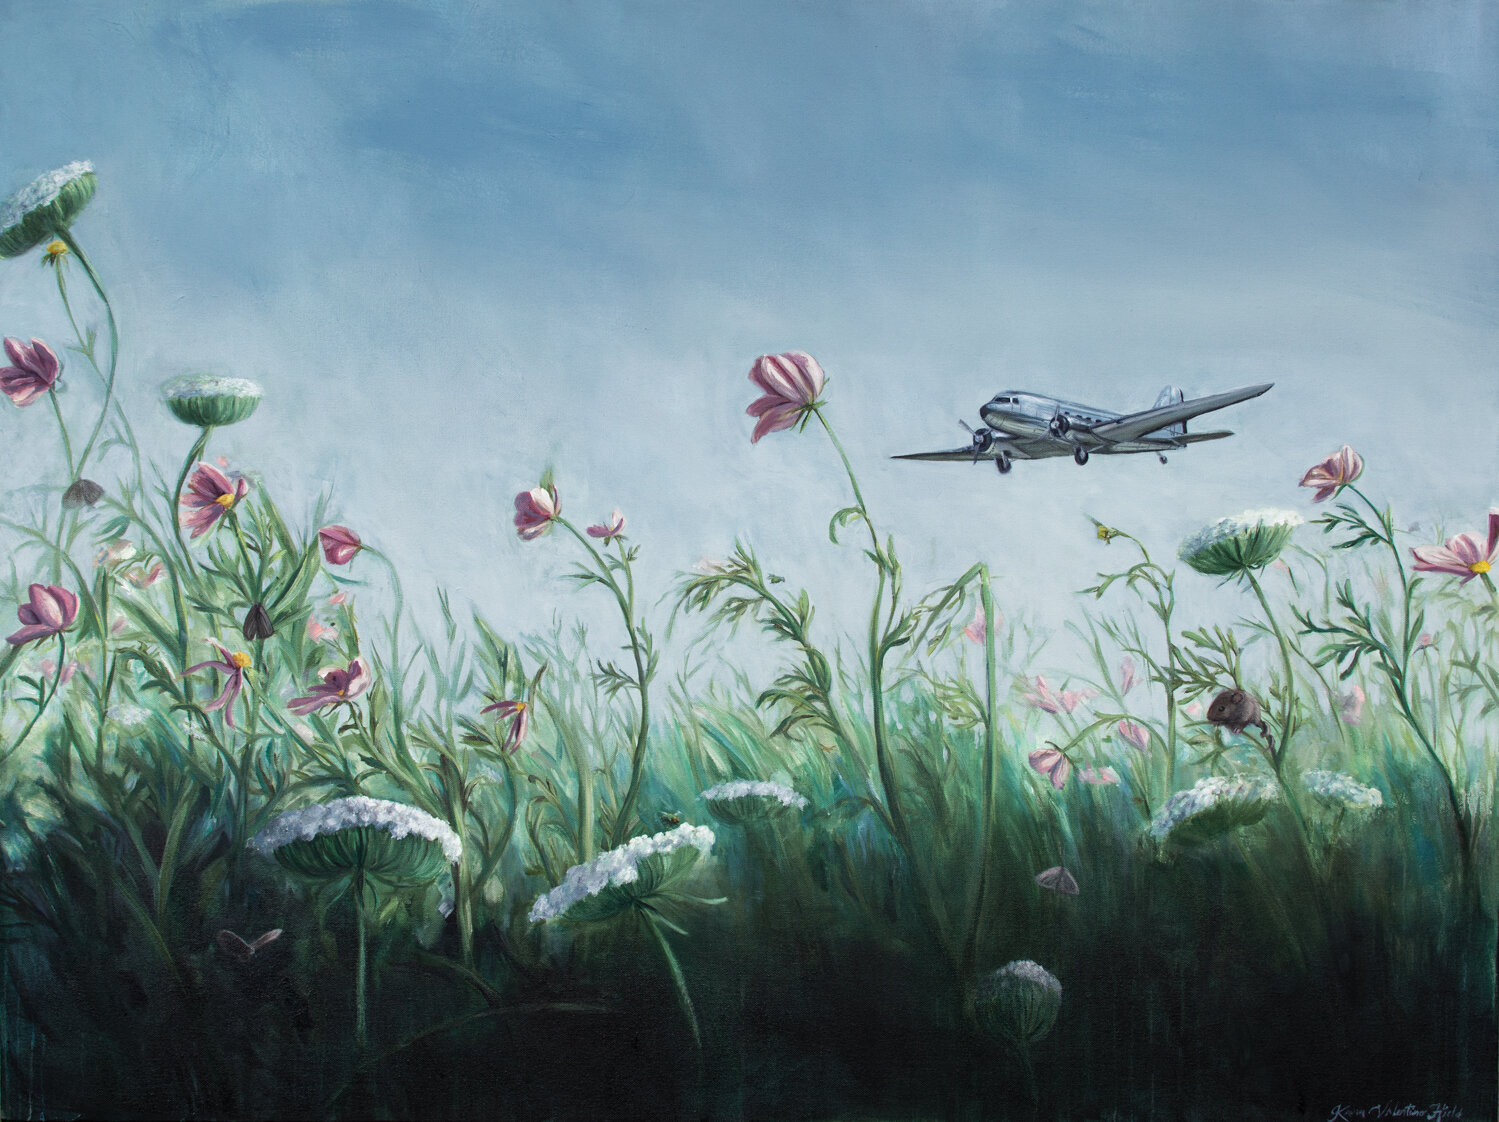 Cosmic Daydreams - Aviation and Nature Painting by Kara Valentino Ffield